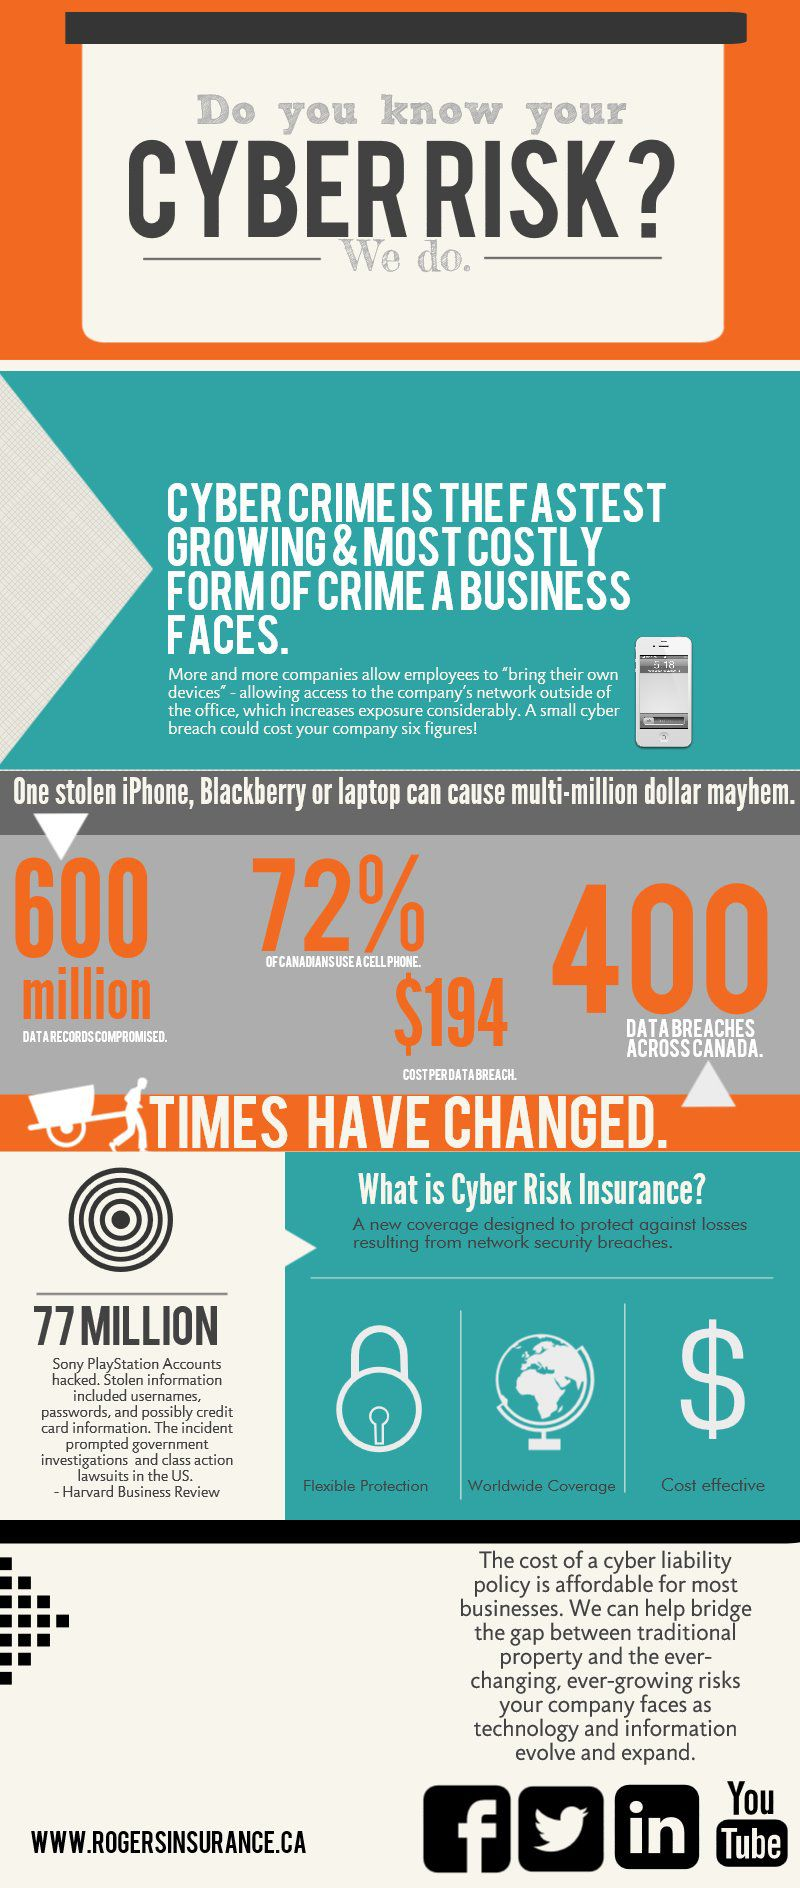 Cyber Crime Is The Fastest Growing  Most Costly Form Of Crime A